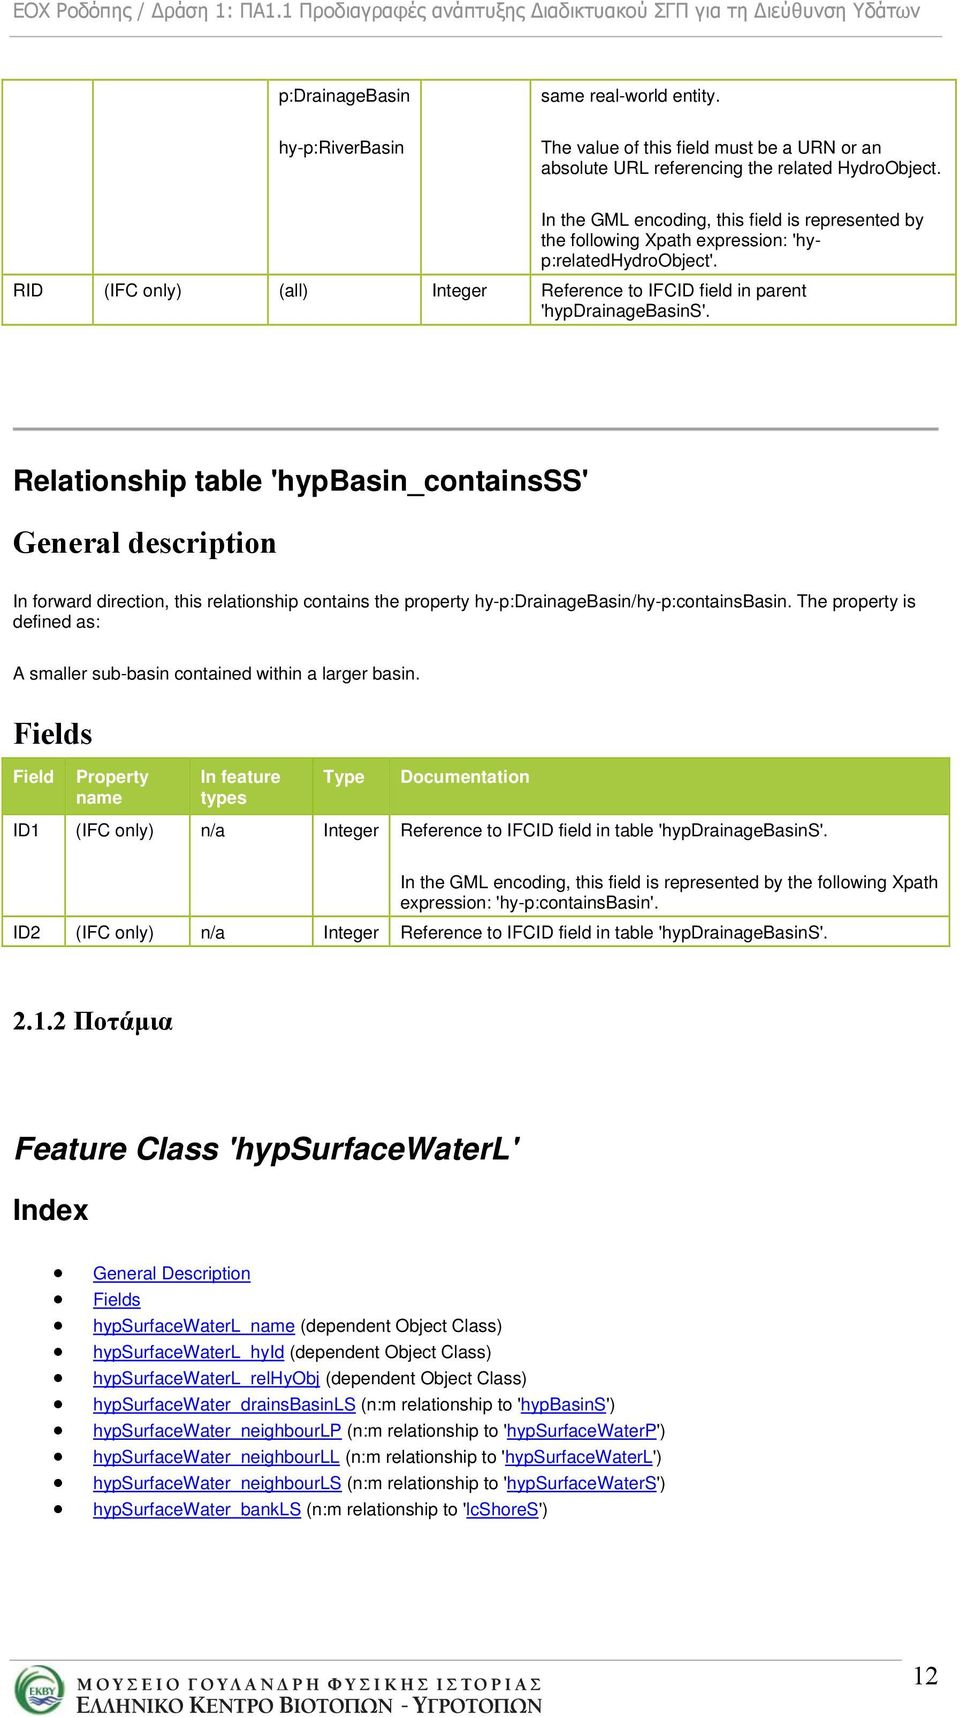 Relationship table 'hypbasin_containsss' Geneal desciption In fowad diection, this elationship contains the popety hy-p:dainagebasin/hy-p:containsbasin.